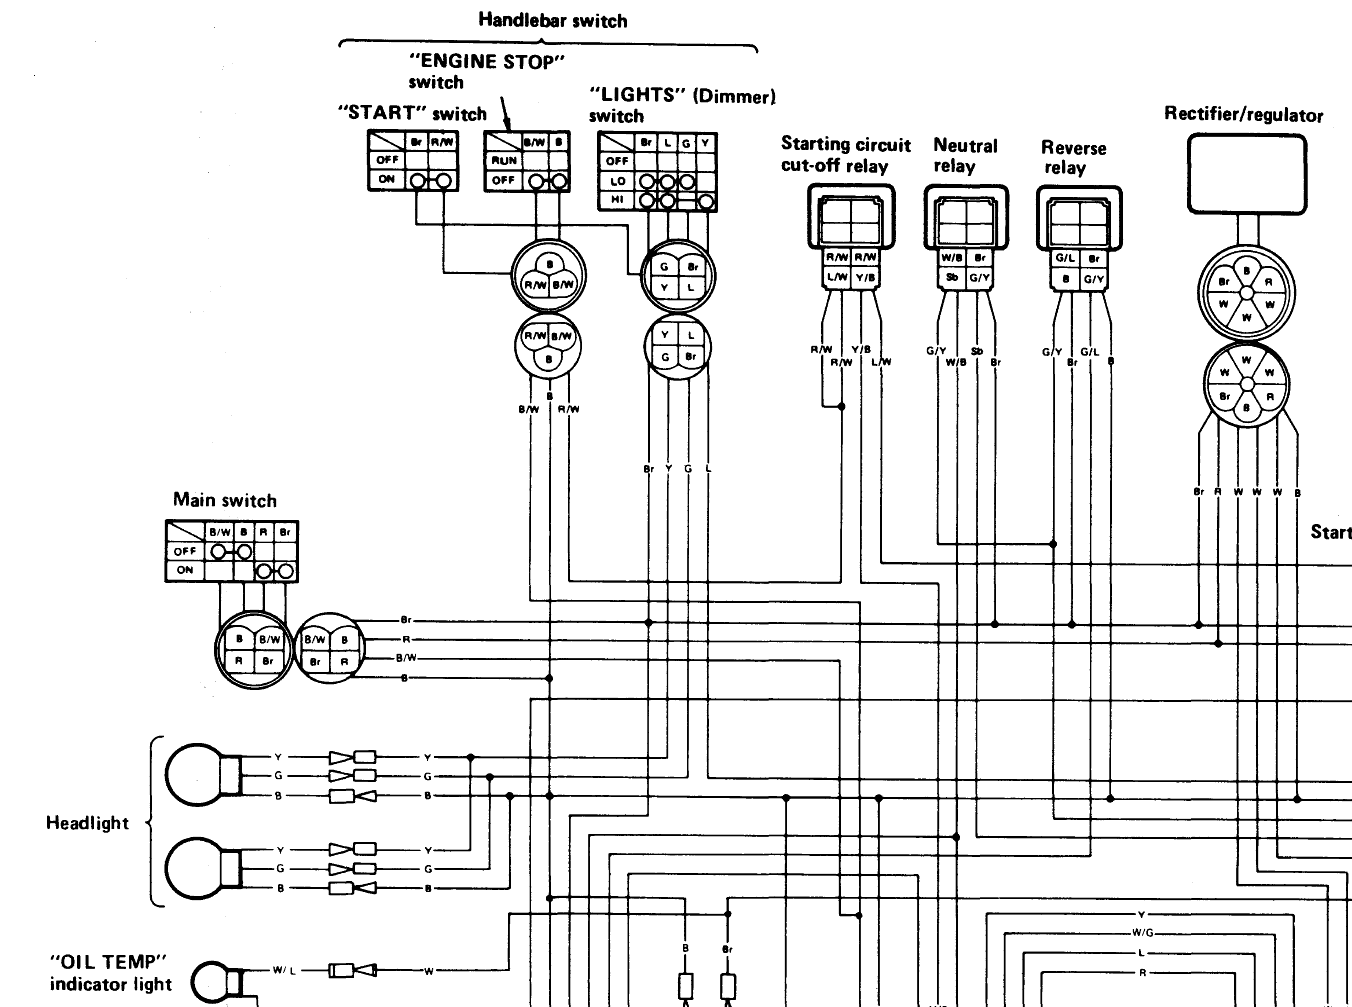 Yamaha Warrior Wiring Diagram – The Wiring Diagram – readingrat.net